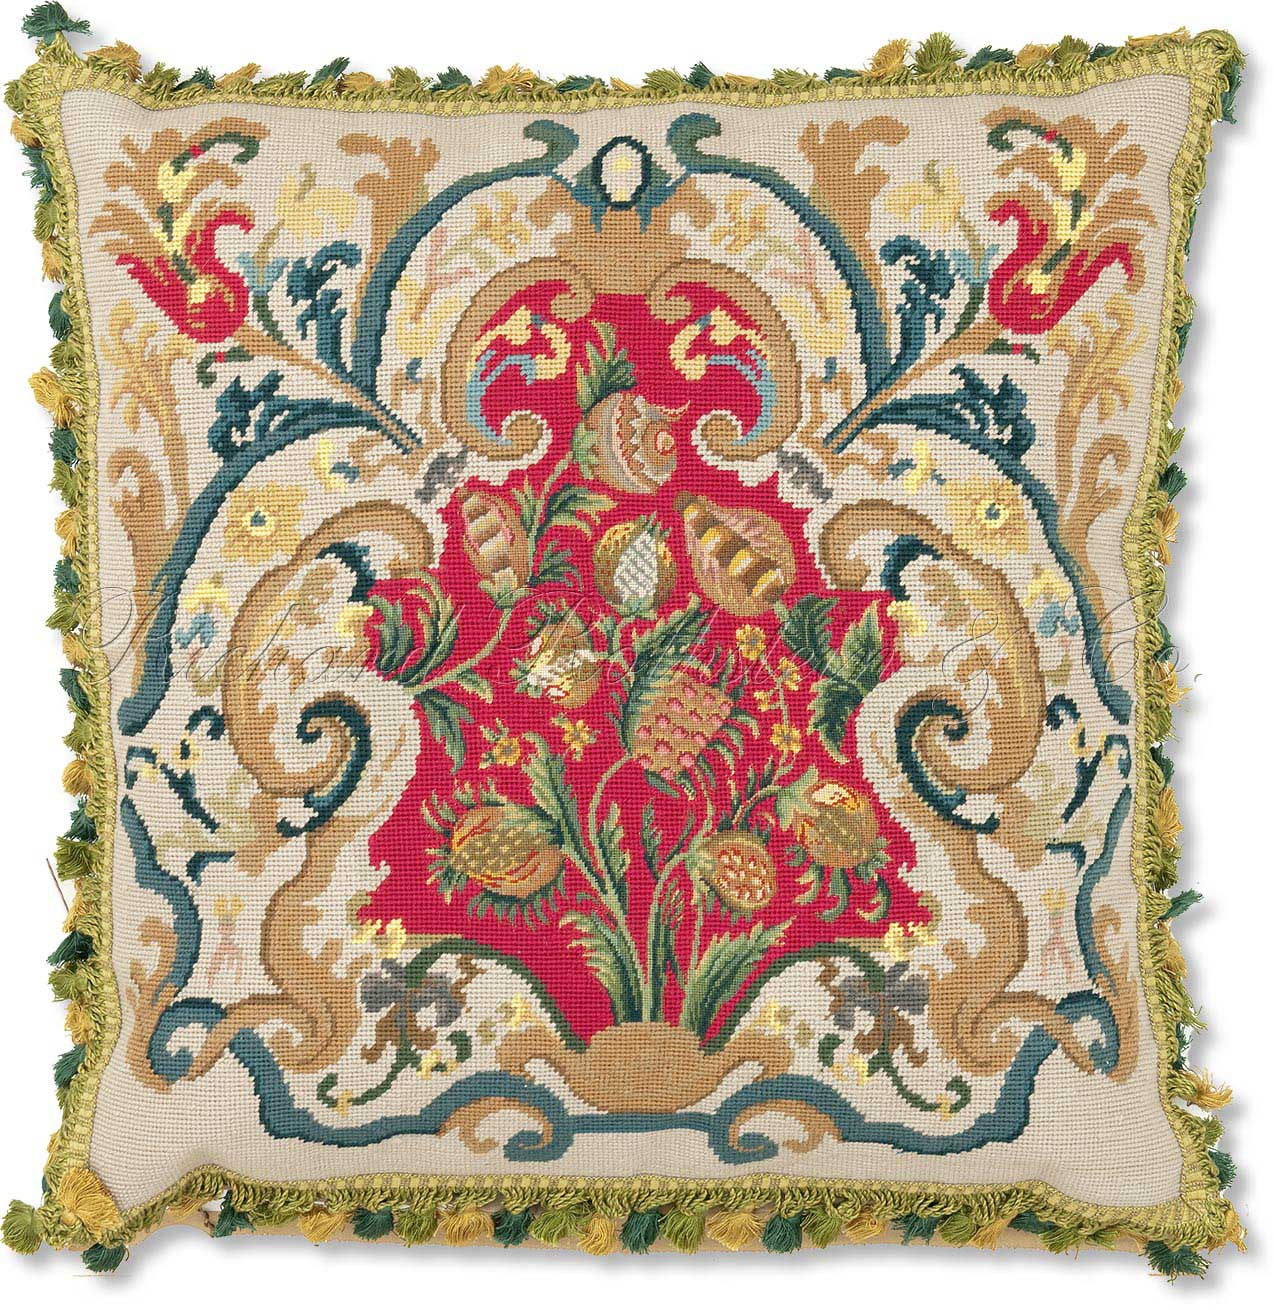 Modern Needlepoint Kits For Pillows : Eye For Design: Needlepoint.....Creating Heirlooms For Your Interiors